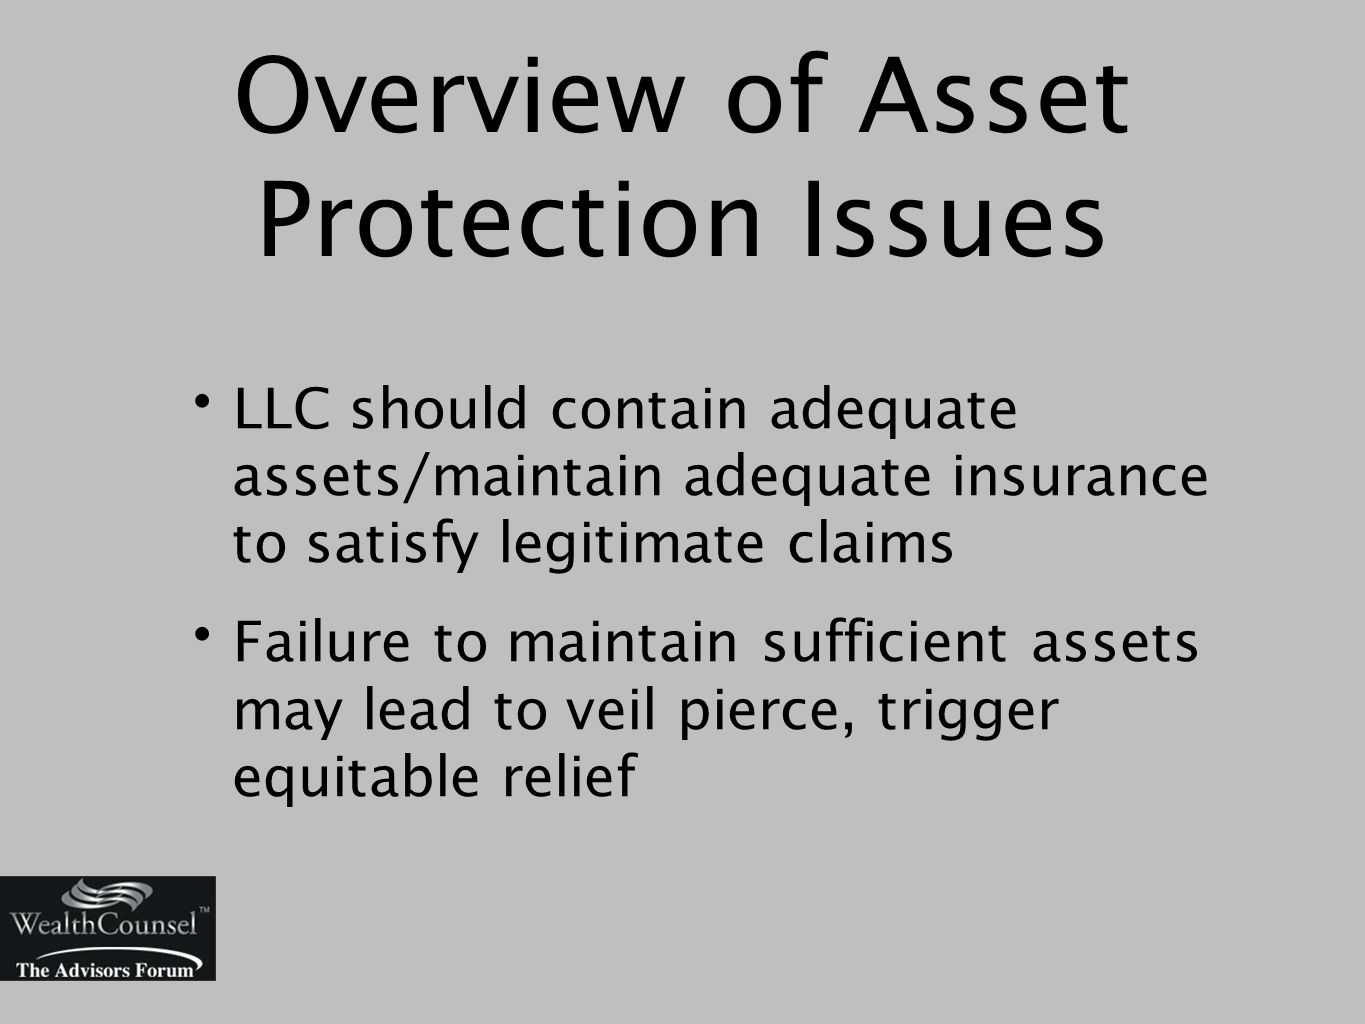 Overview of Asset Protection Issues LLC should contain adequate assets/maintain adequate insurance to satisfy legitimate claims Failure to maintain sufficient assets may lead to veil pierce, trigger equitable relief